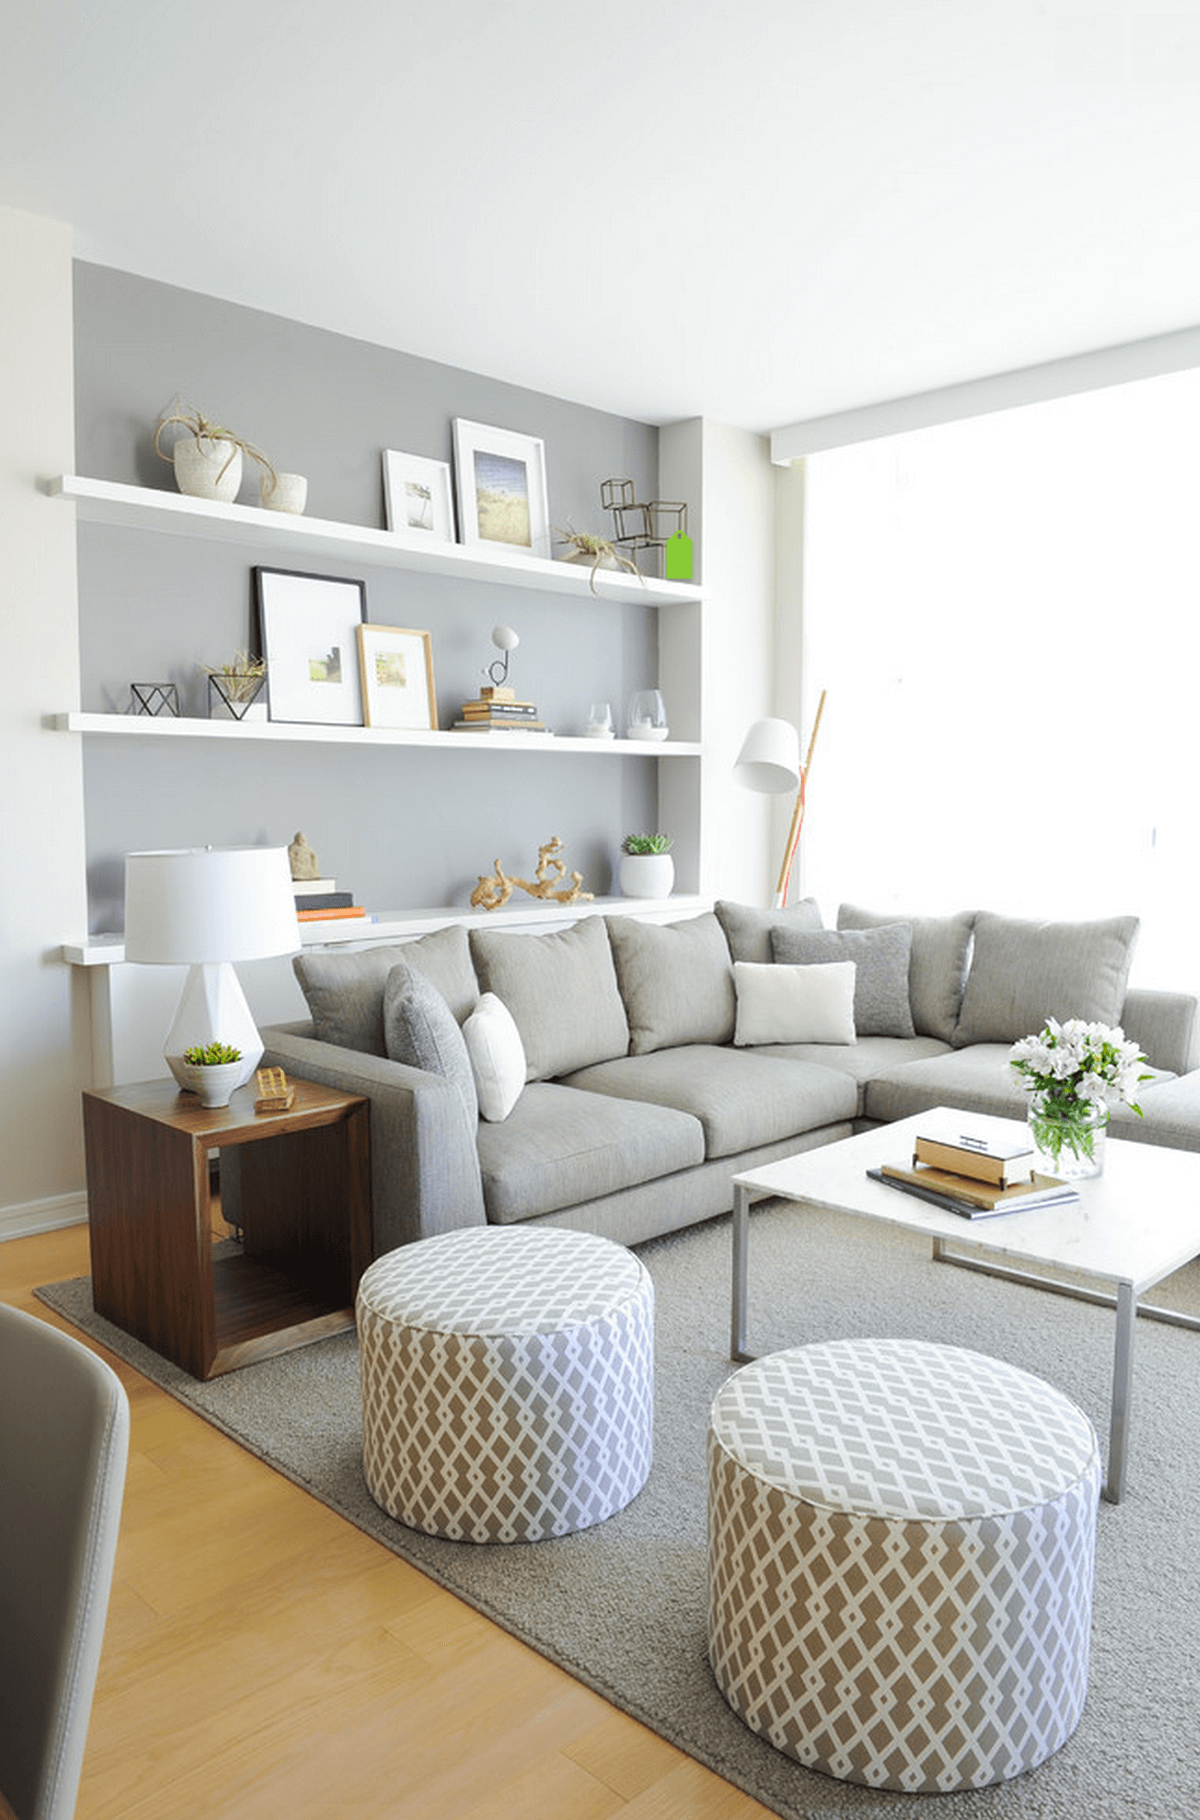 26 Stylish Ways Modern Living Room Decorating Ideas Can Make ...